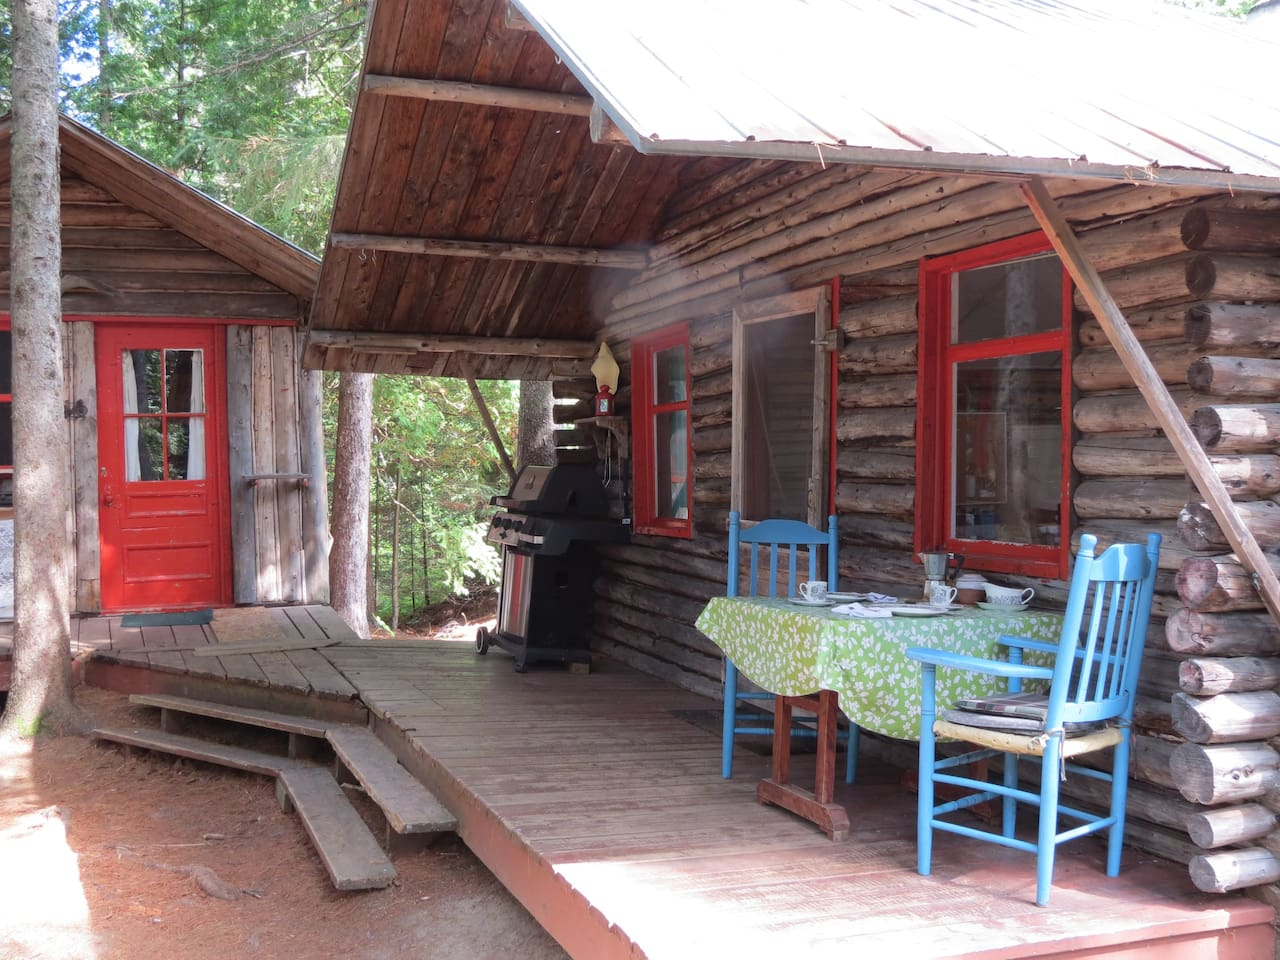 Your reservation offers two one-room cabins. Both are included. Enjoy this quiet, private space under the pines!